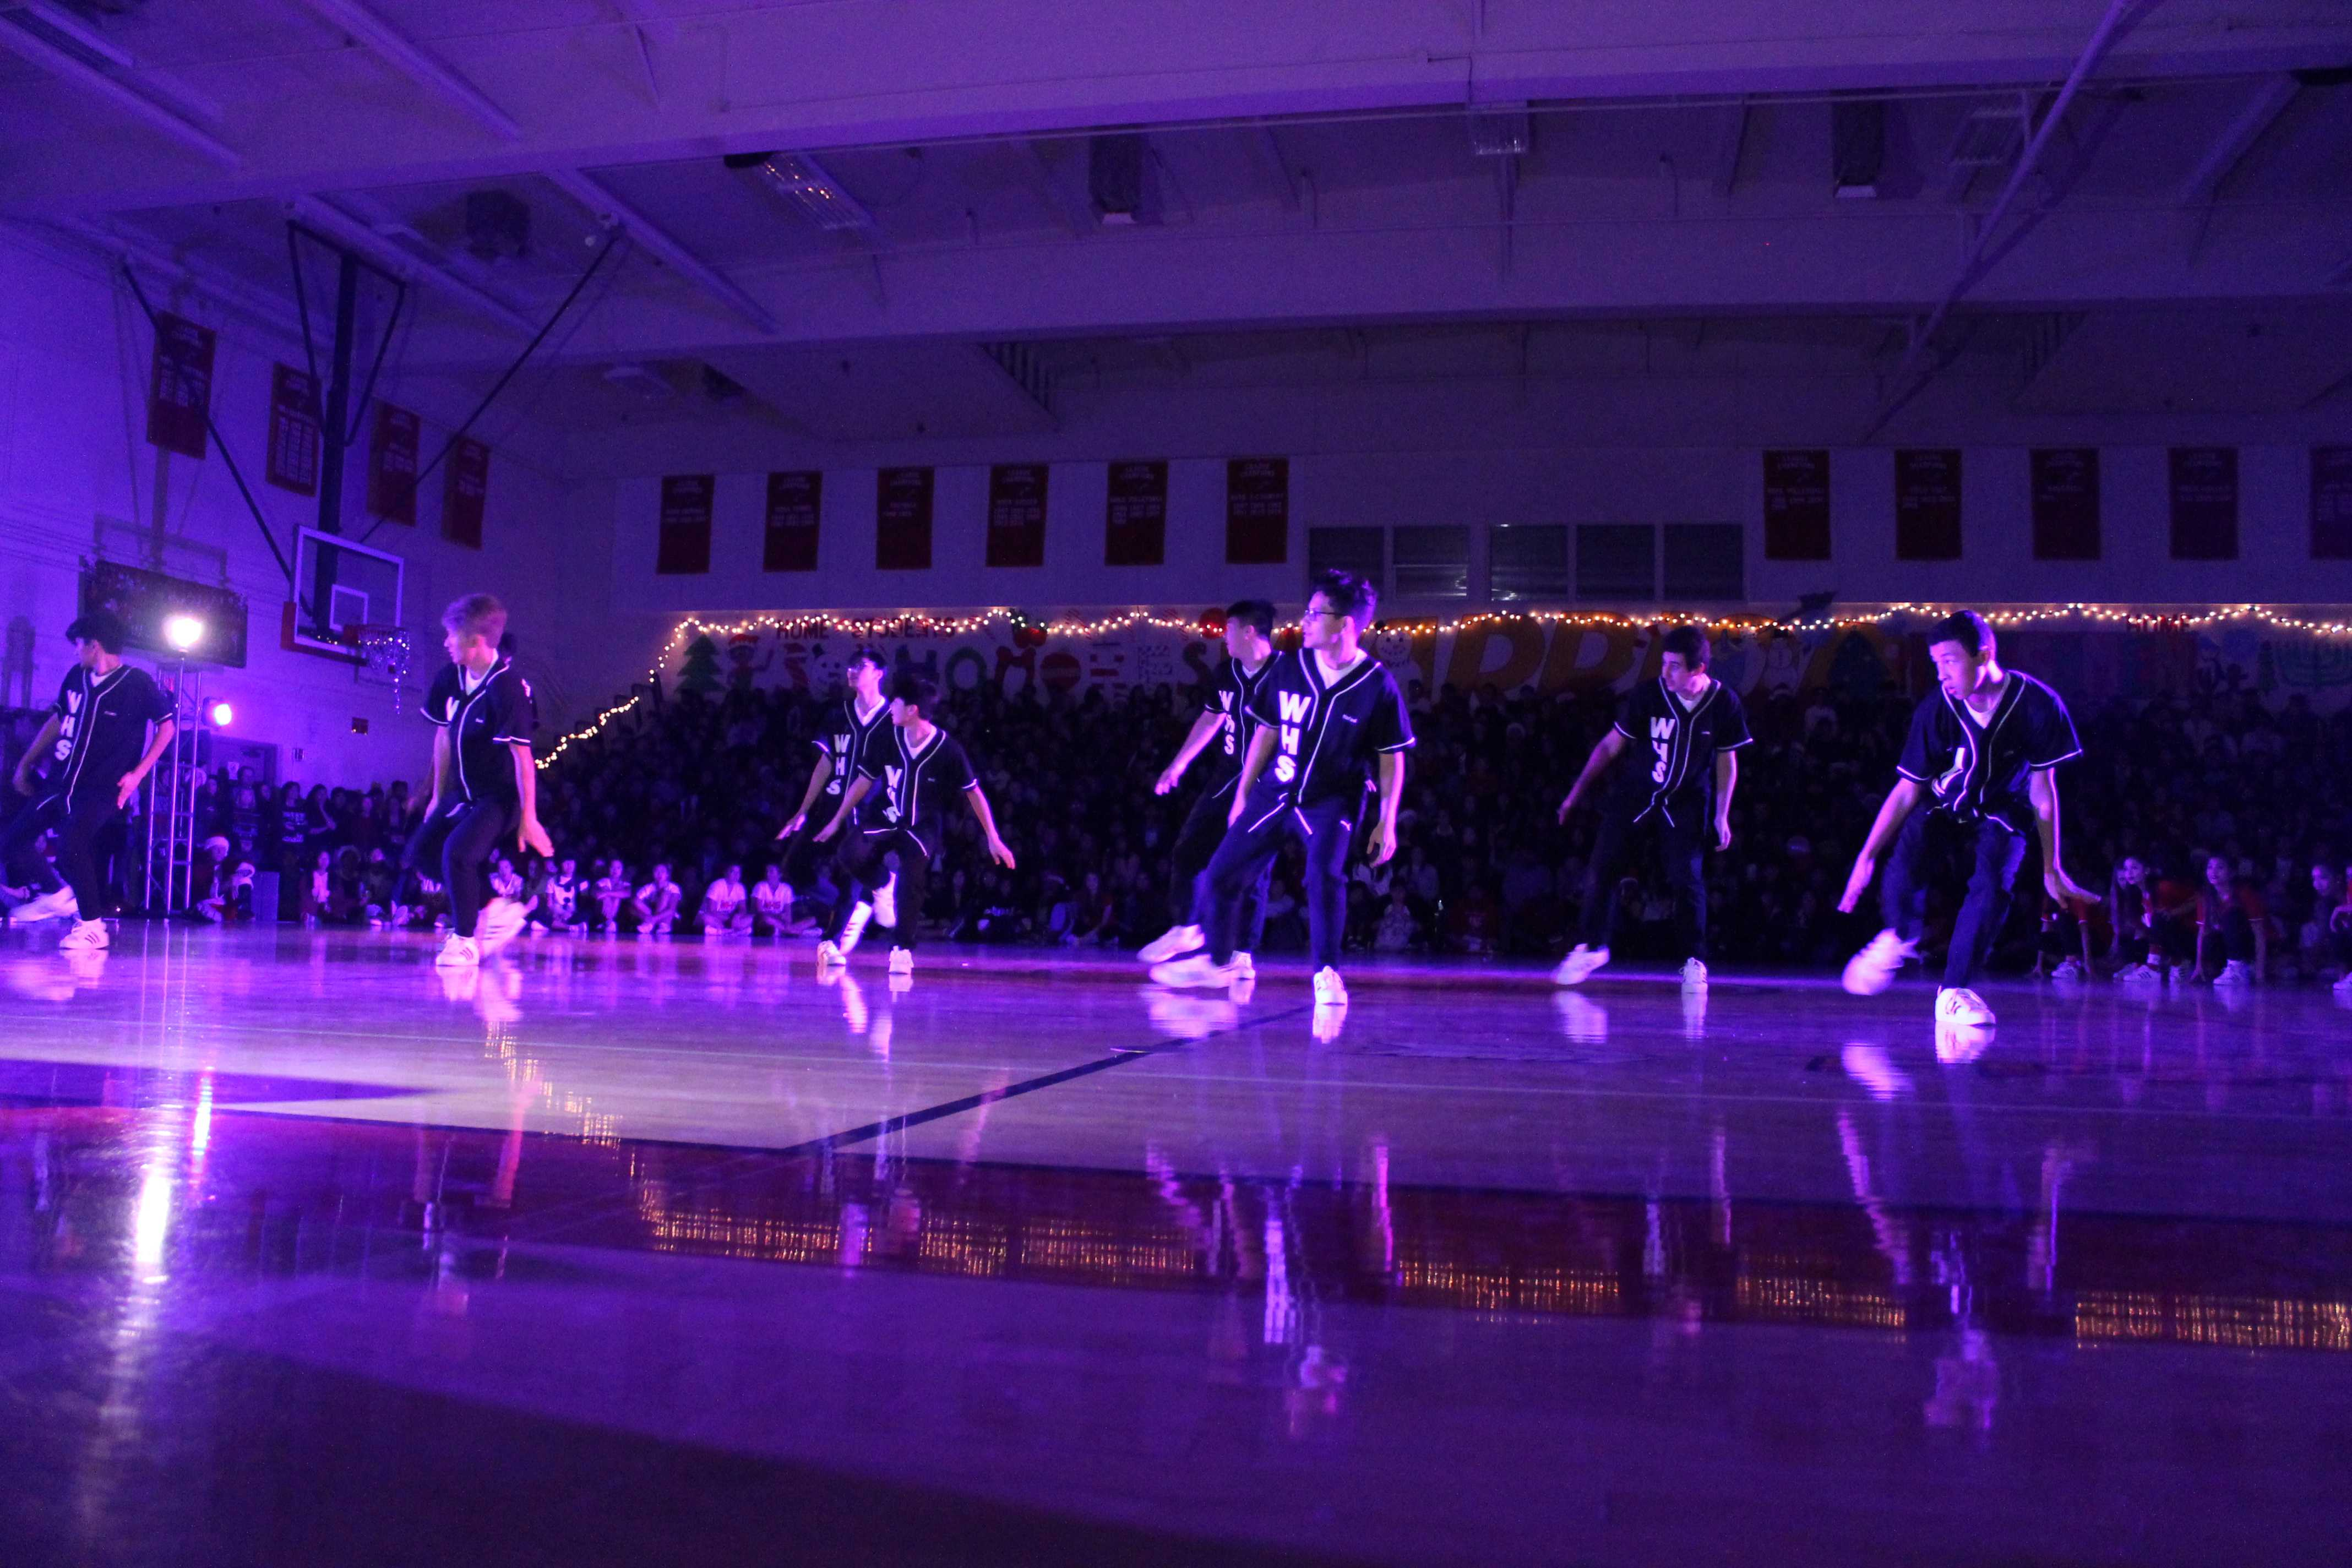 Dance team displays a combined effort at the winter pep rally.